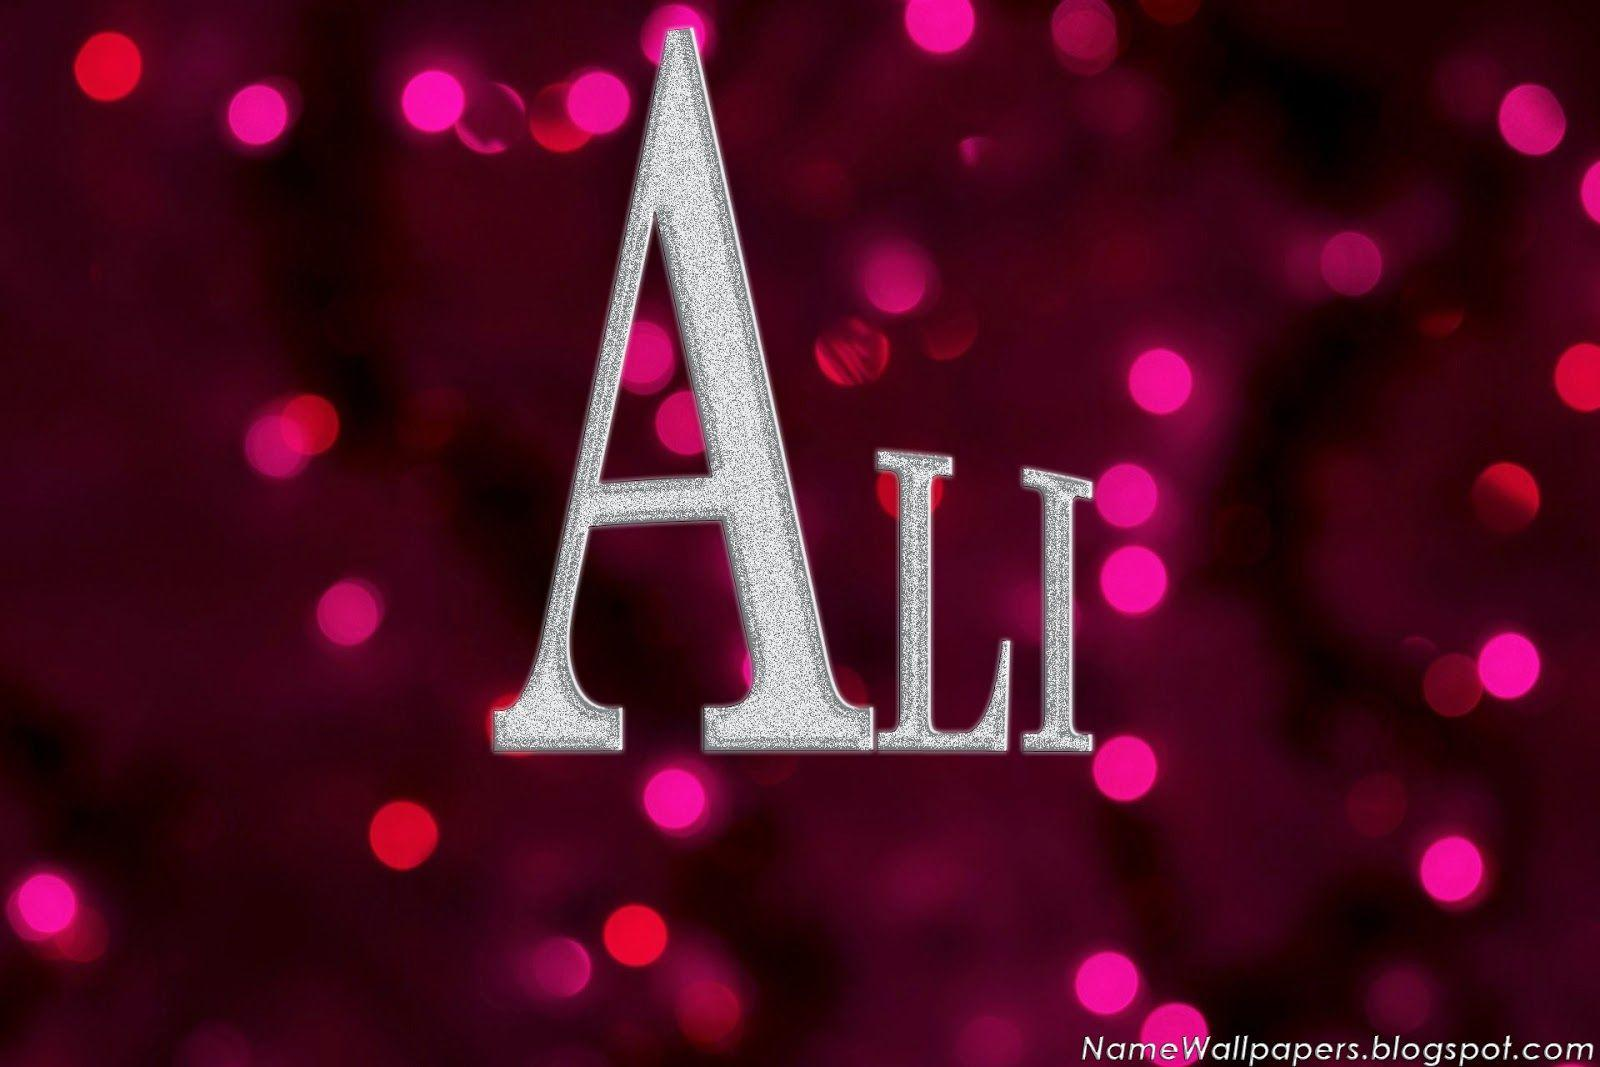 Sher Ali Name Wallpapers Wallpaper Cave